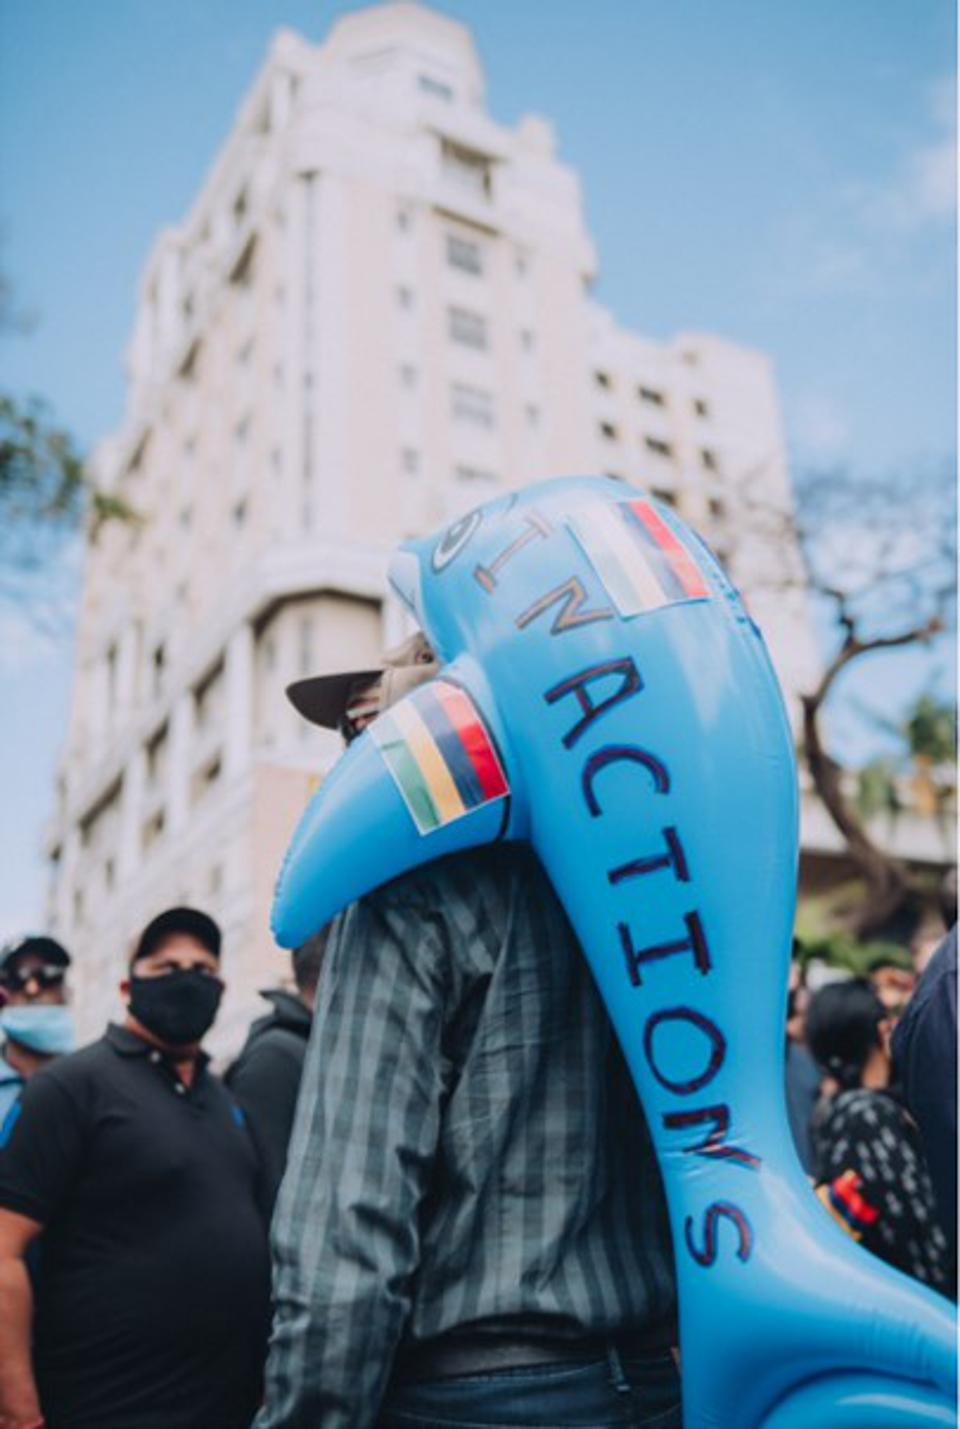 29 August 2020: National protests were held in Mauritius on the environmental impact of the Wakashio oil spill and what is being seen as a clamp down on democracy in the country.